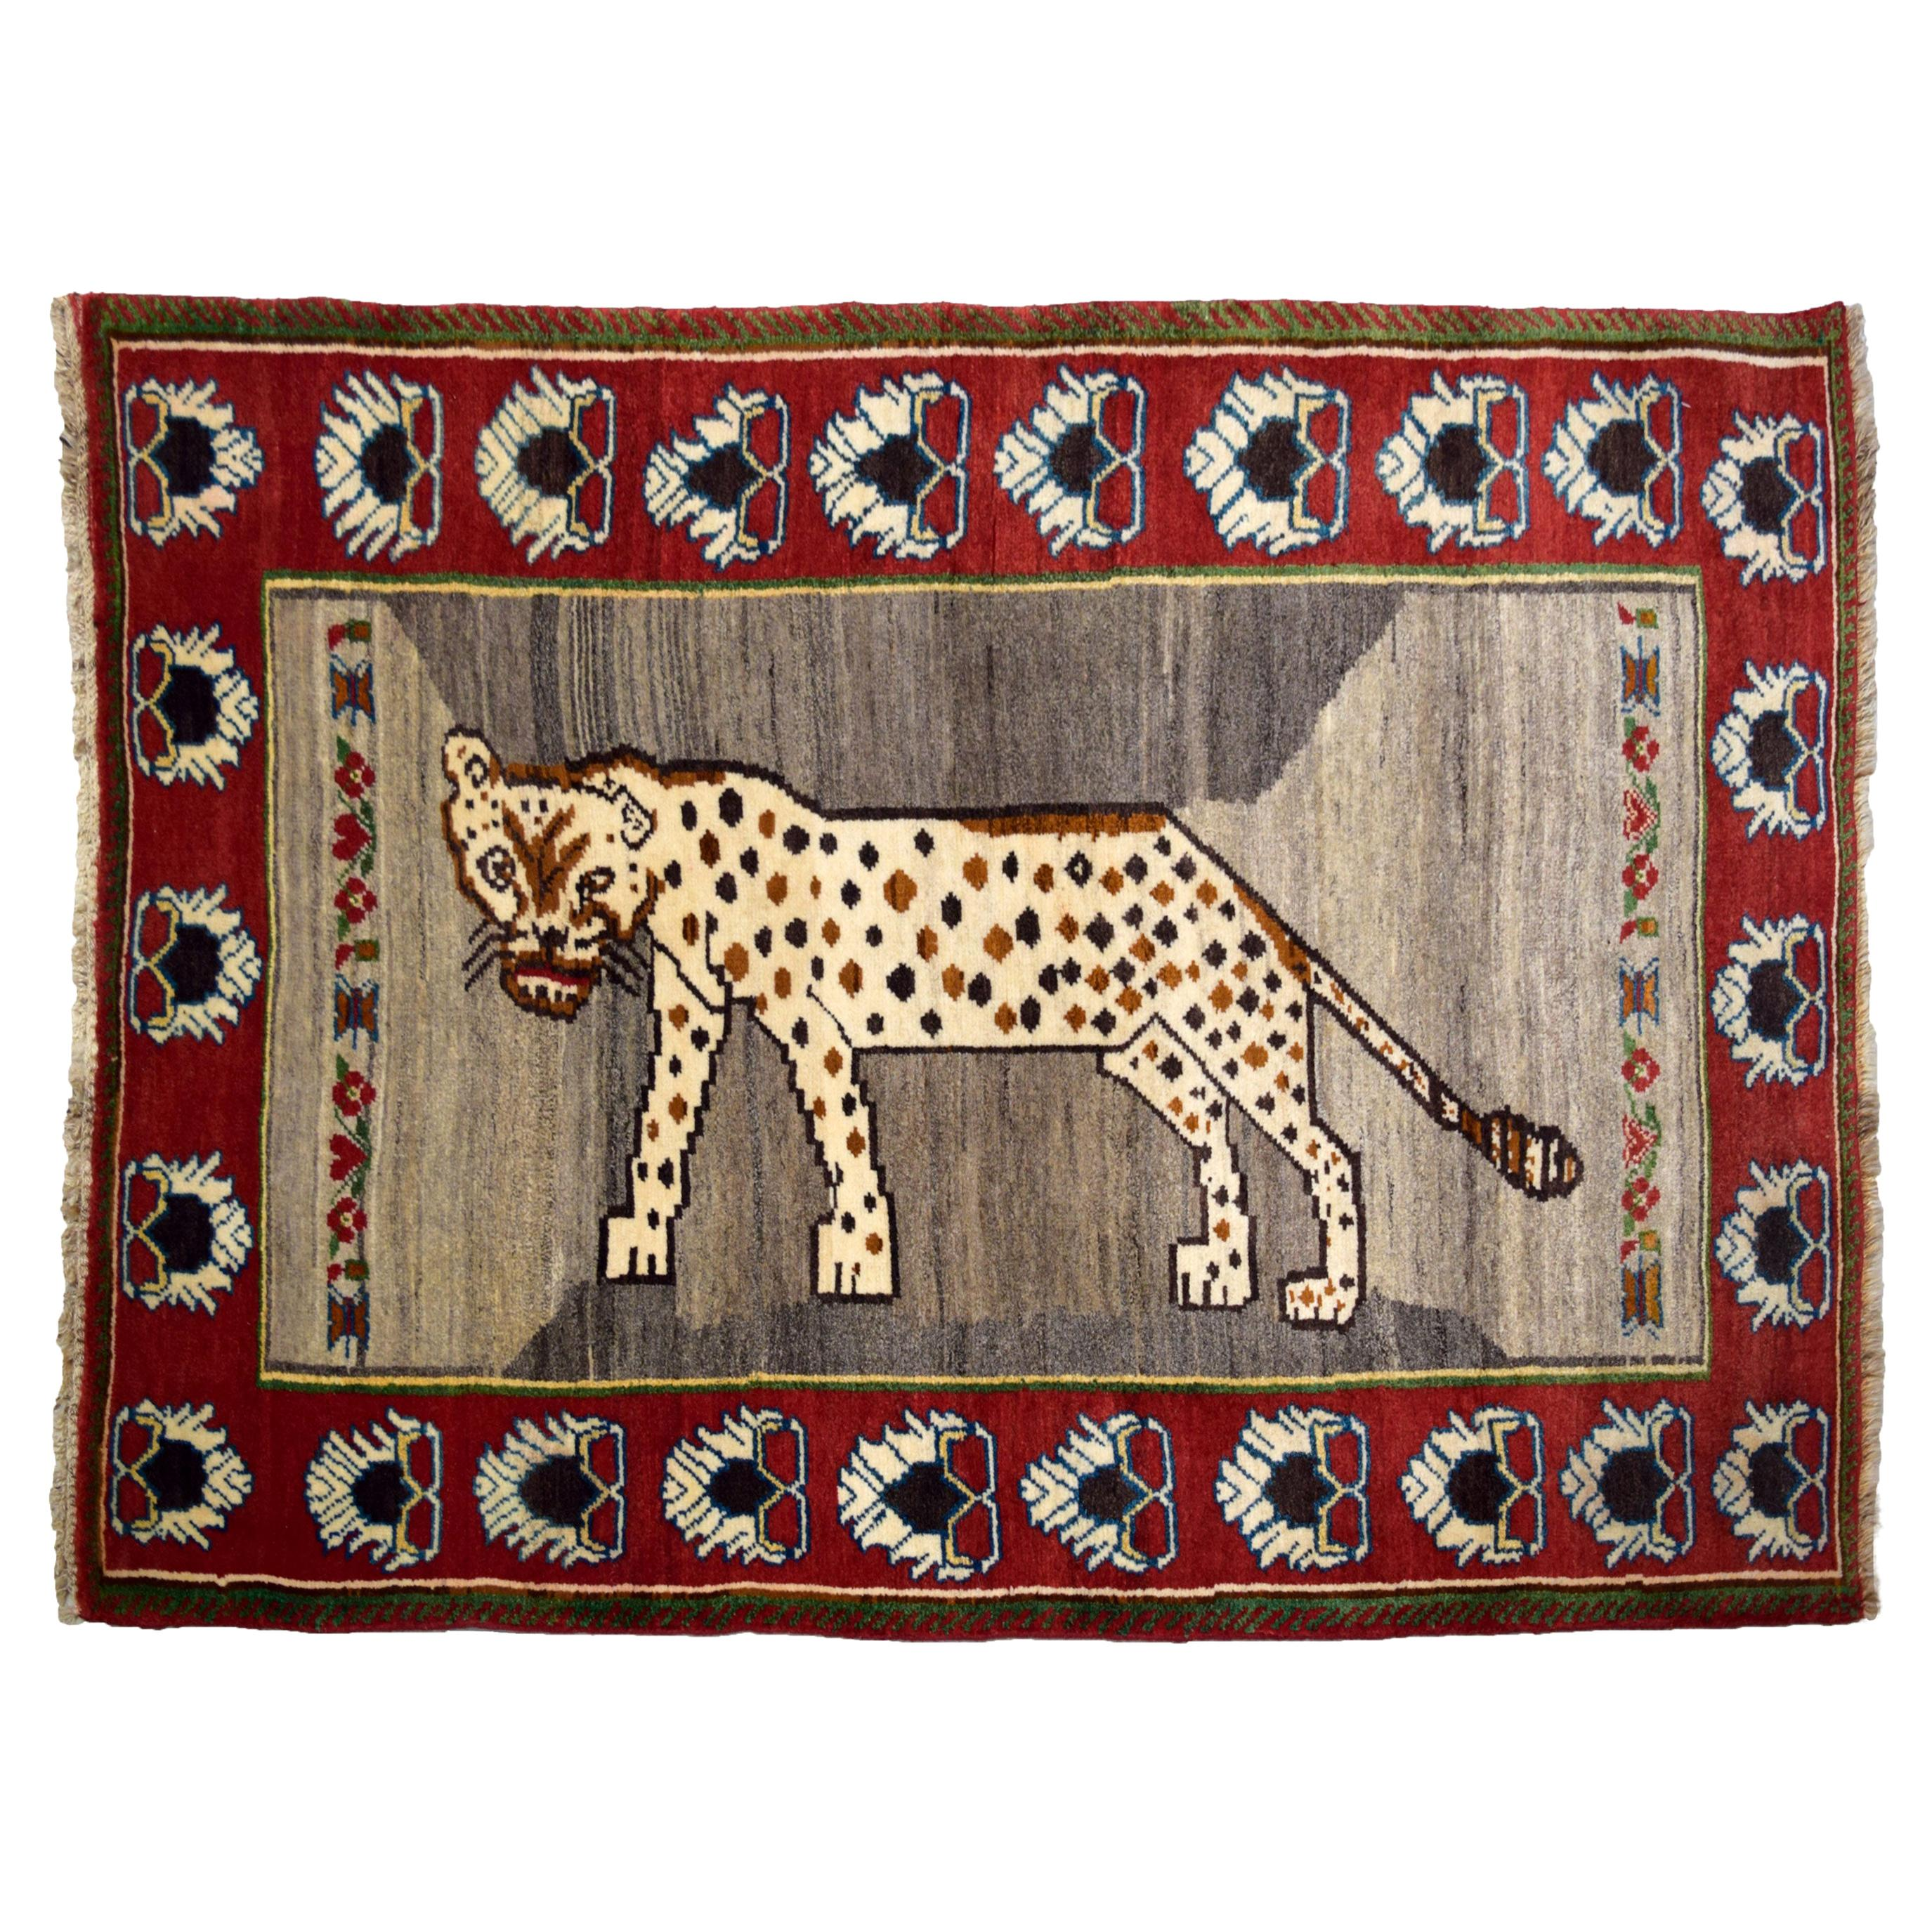 Persian Qashqai Leopard Carpet in Red, Cream, and Grey Wool